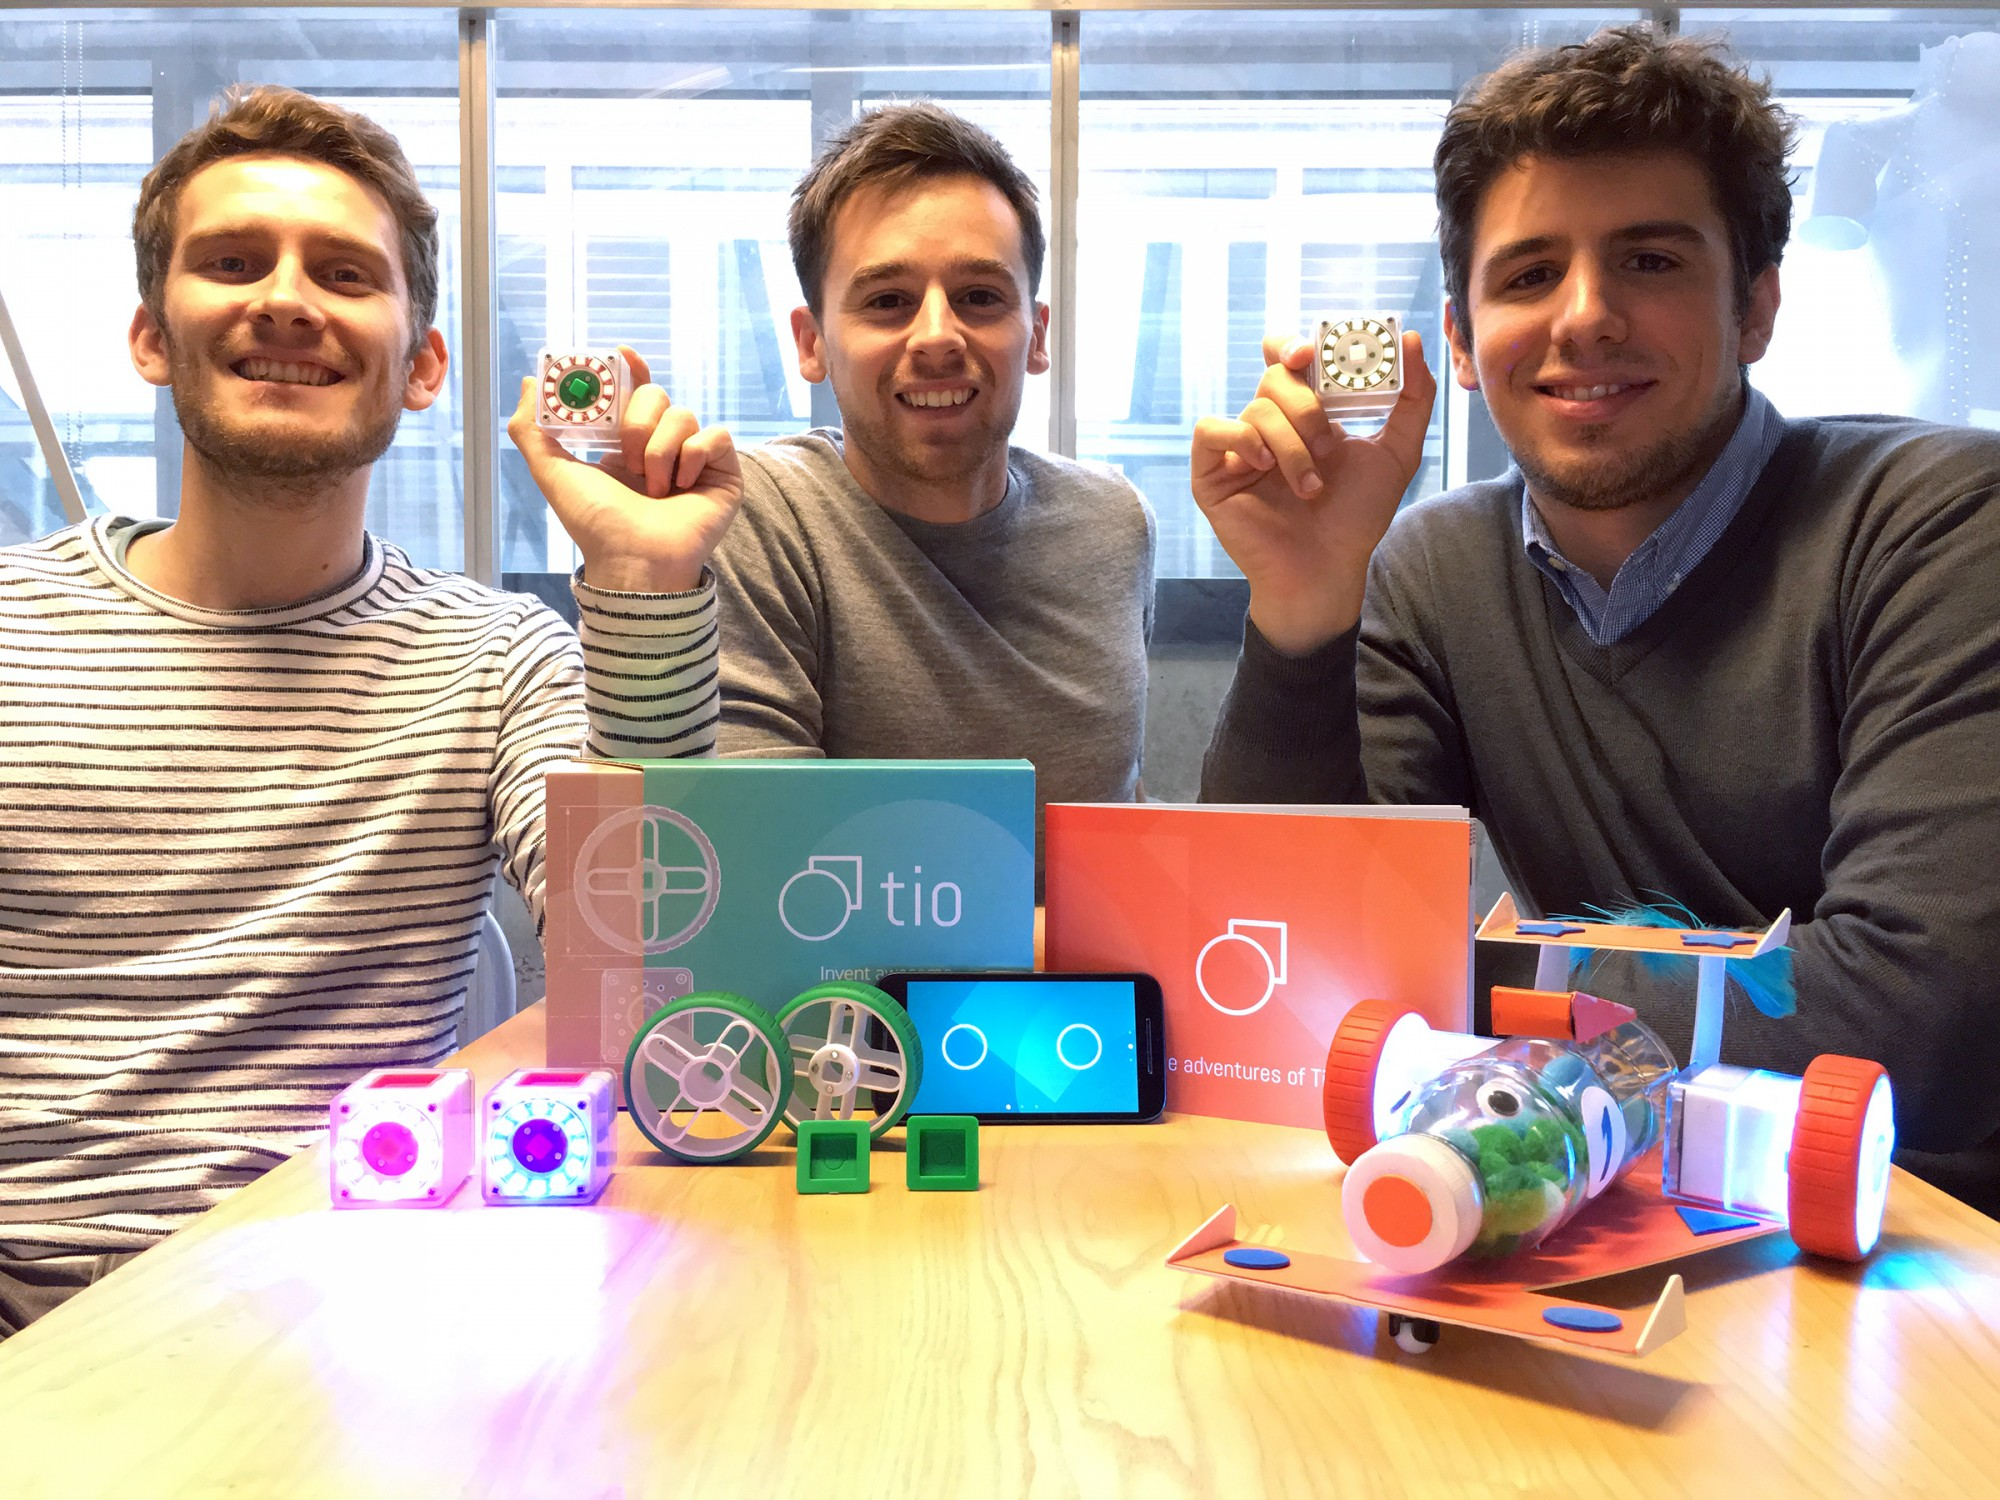 Tio, The Toy Kit Designed To Inspire Tomorrow's Inventors